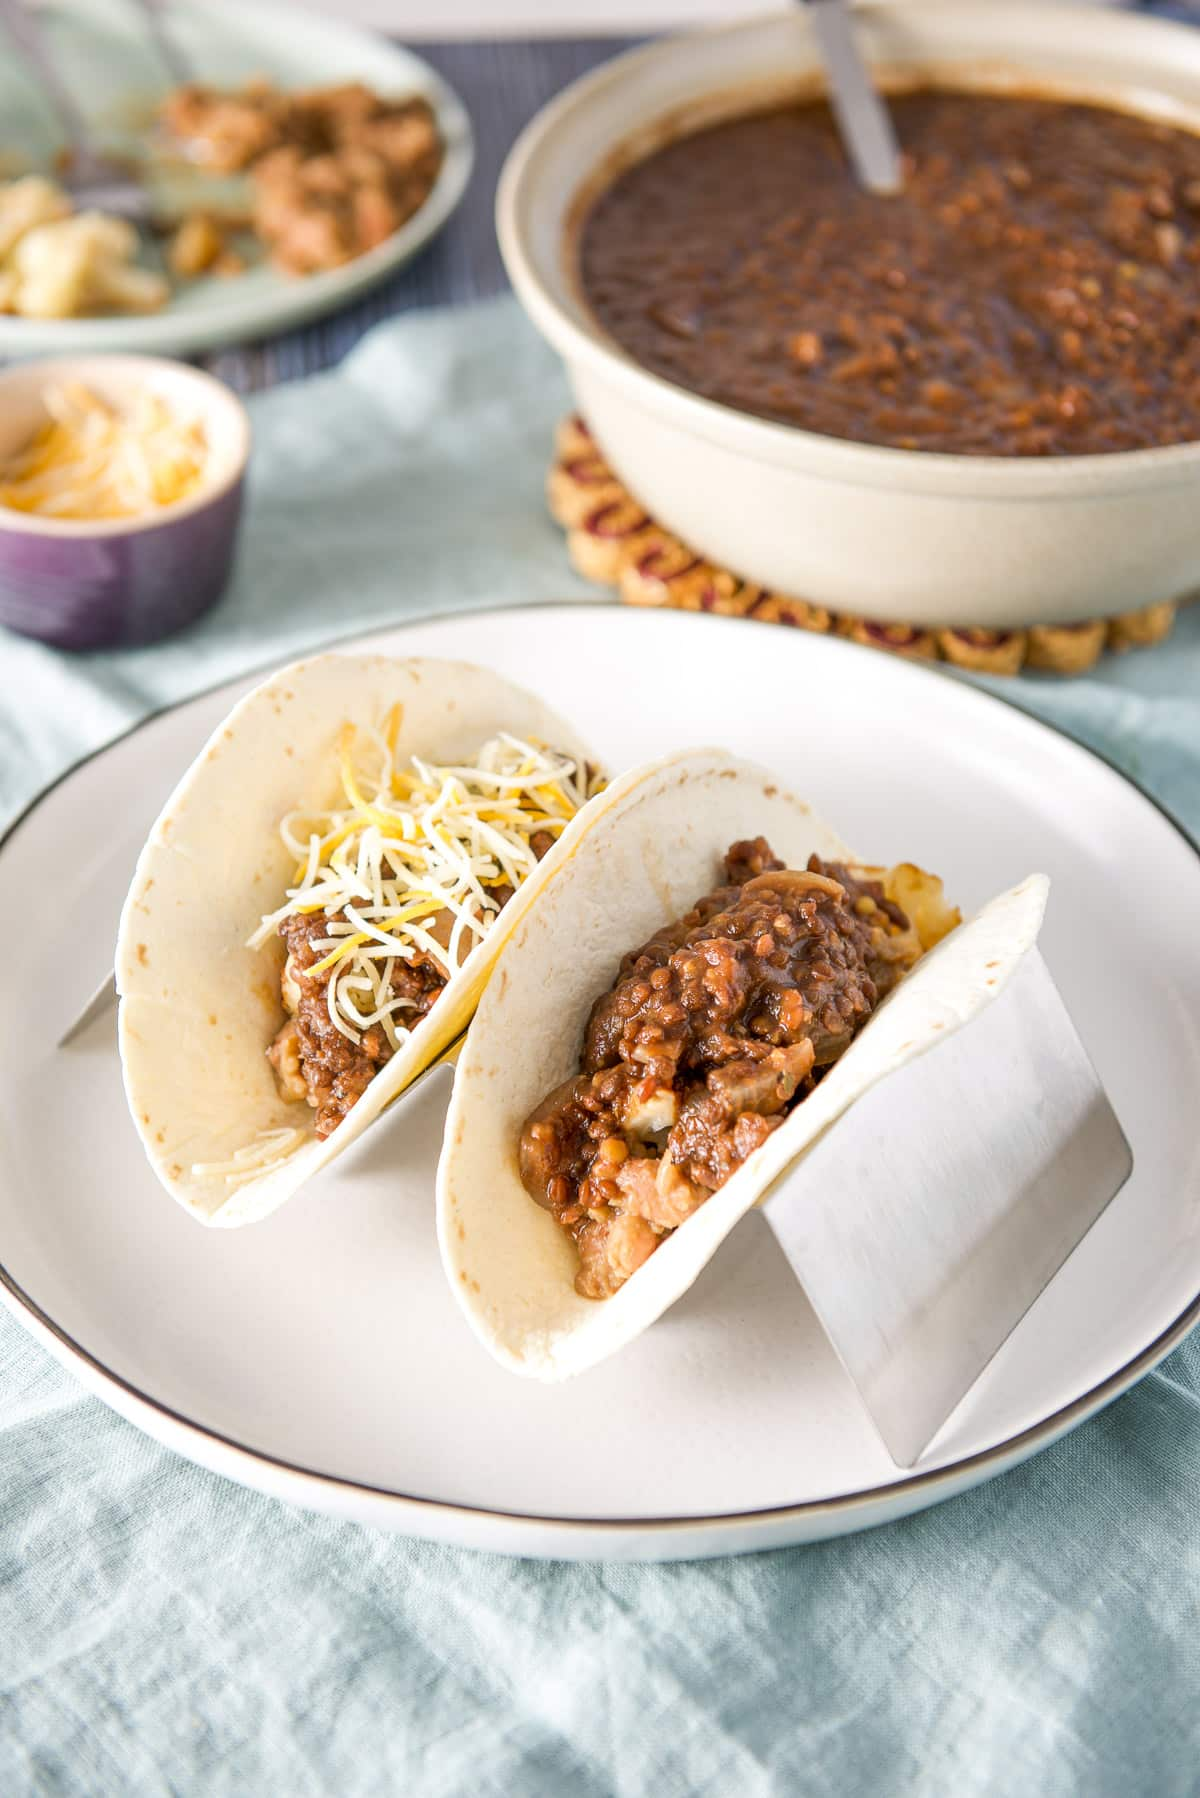 A white plate with a taco holder with flour tortillas and the taco filling in it along with a bowl of lentils in the back